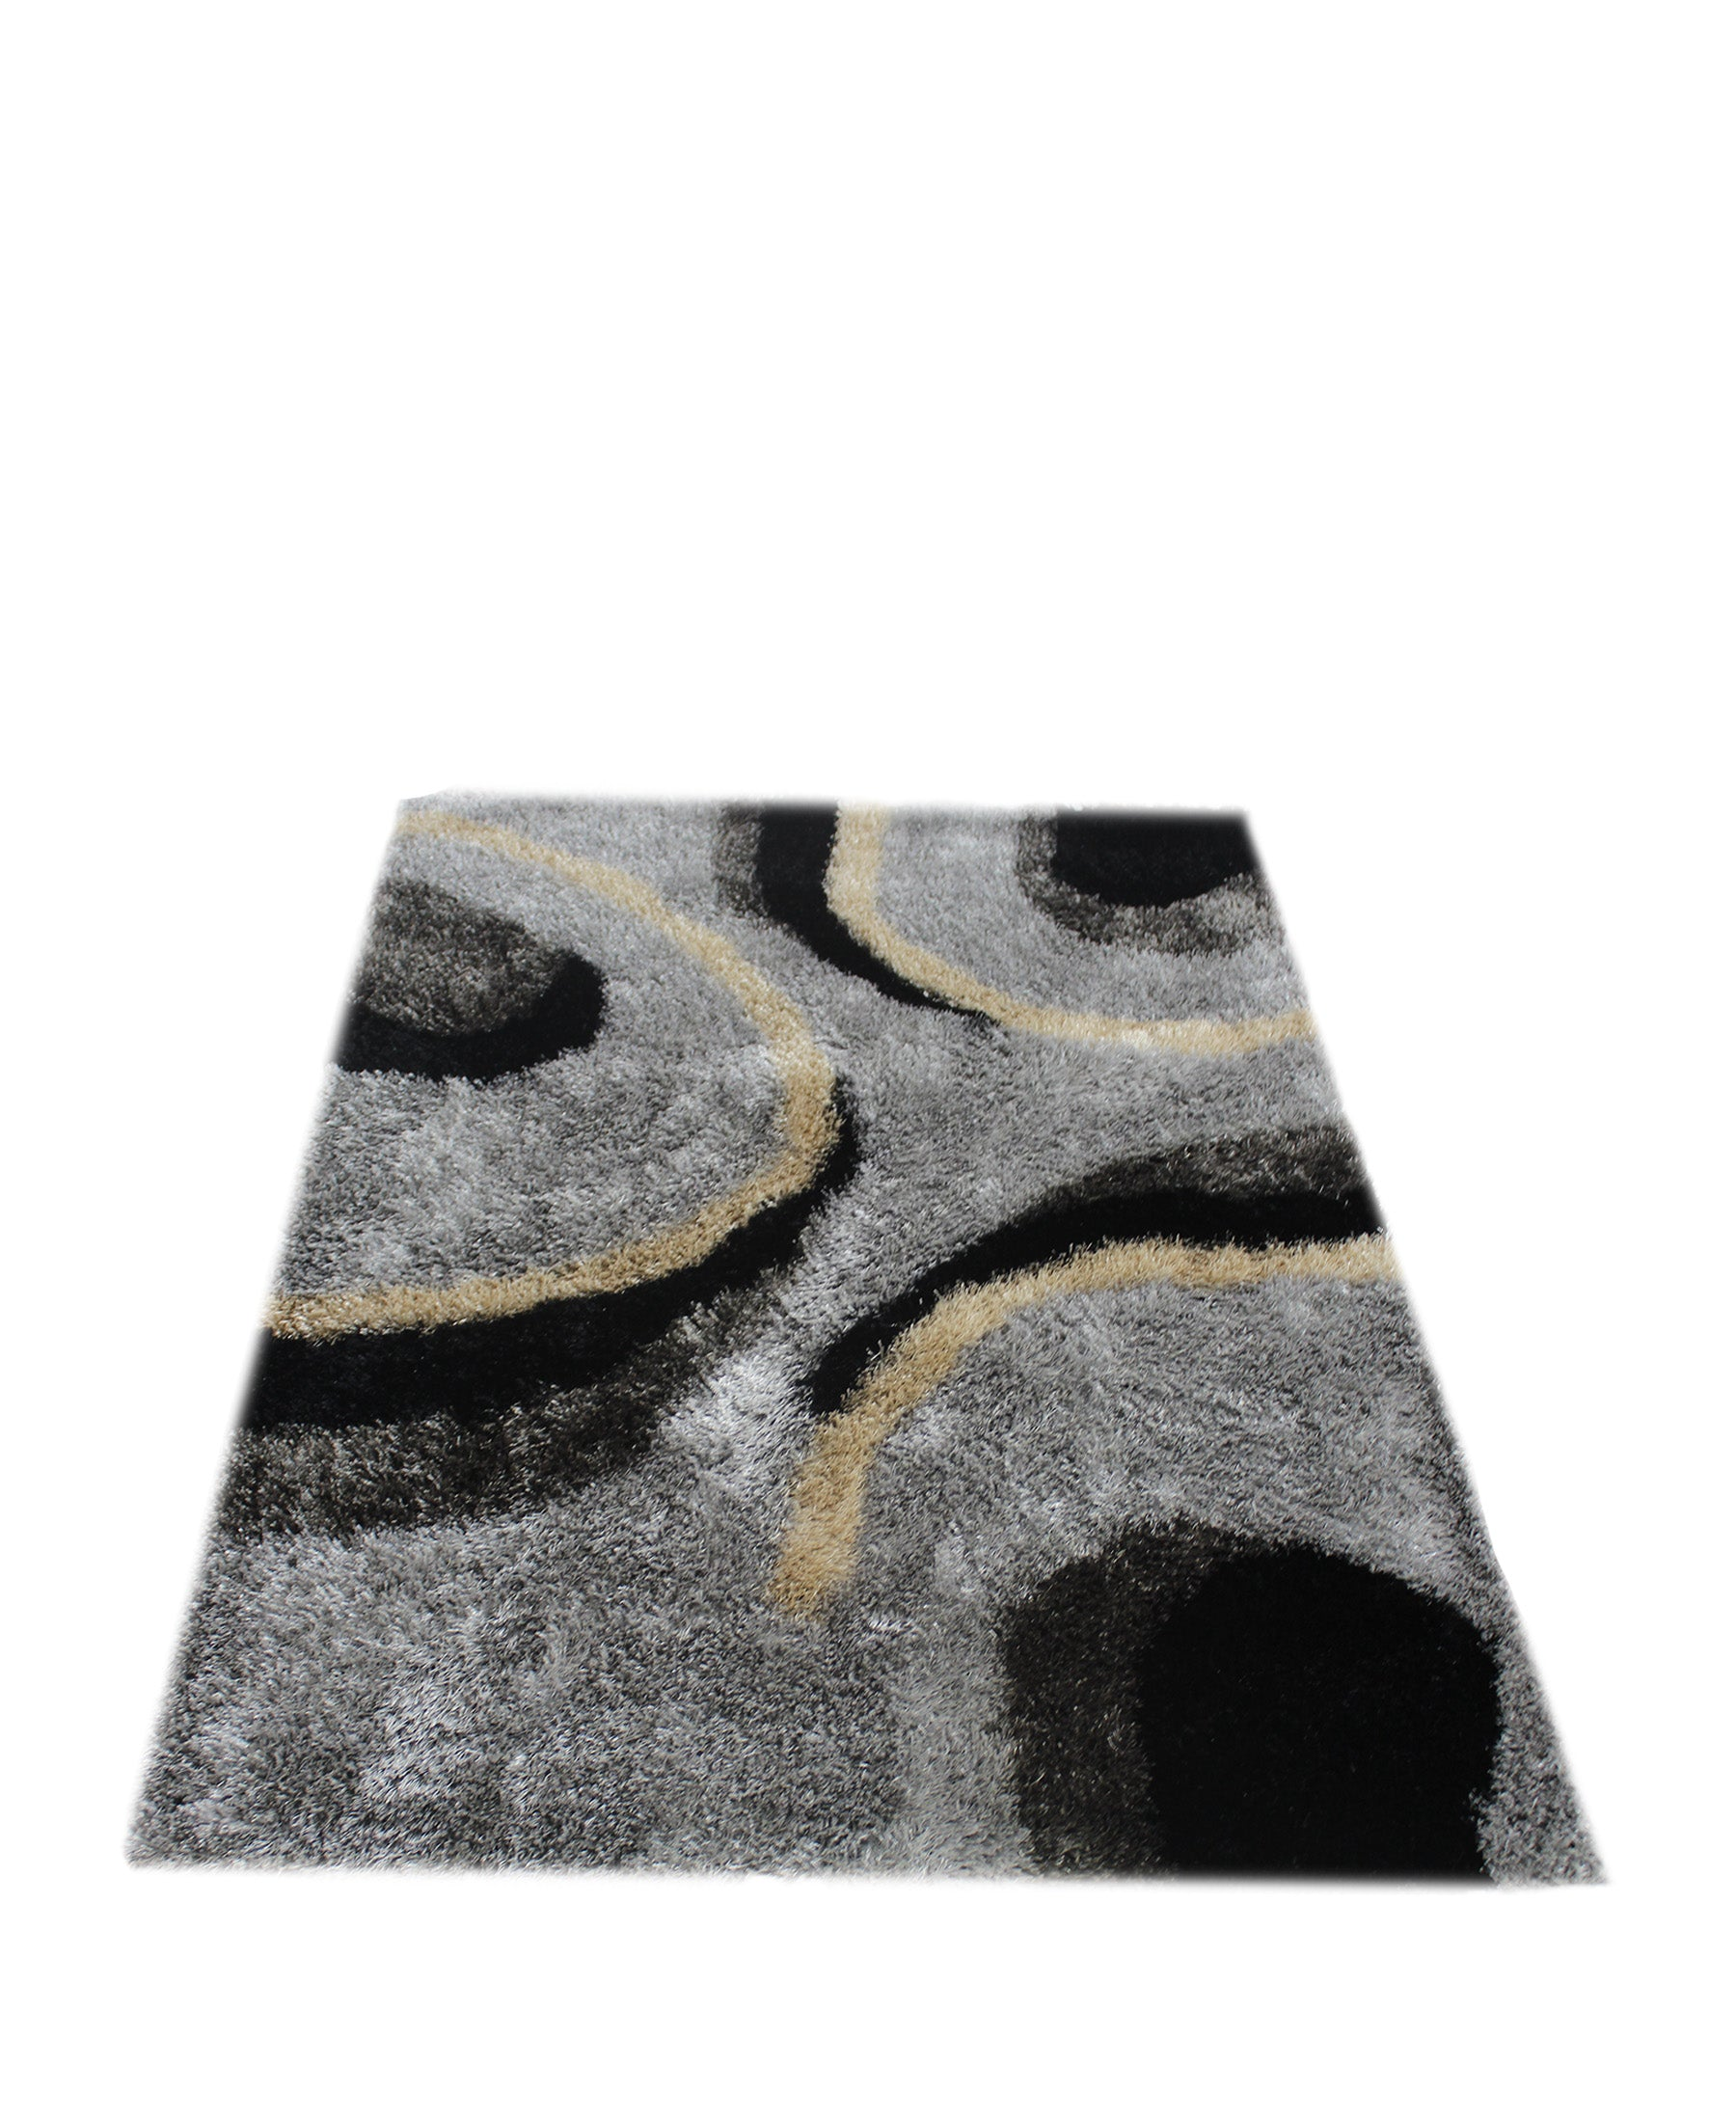 Emporium Shaggy Carpet 1200mm x 1600mm - Black & Grey